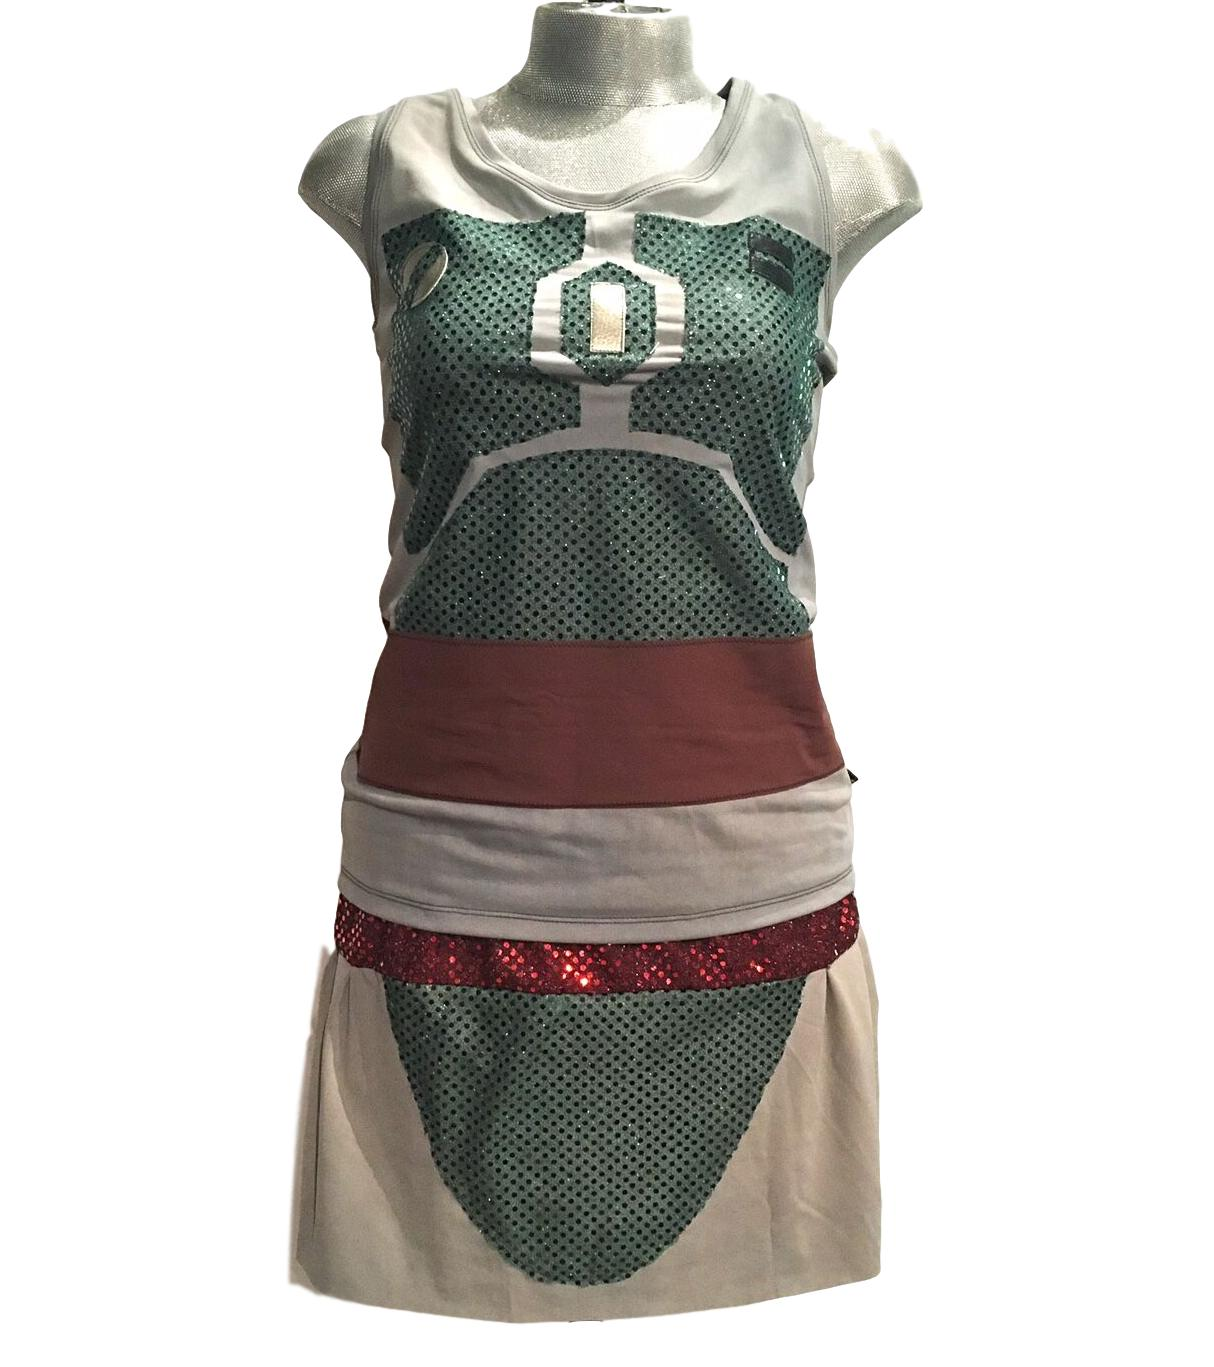 """Boba Fett"" Galatic Bounty Hunter Inspired Costume - Rock City Skirts"